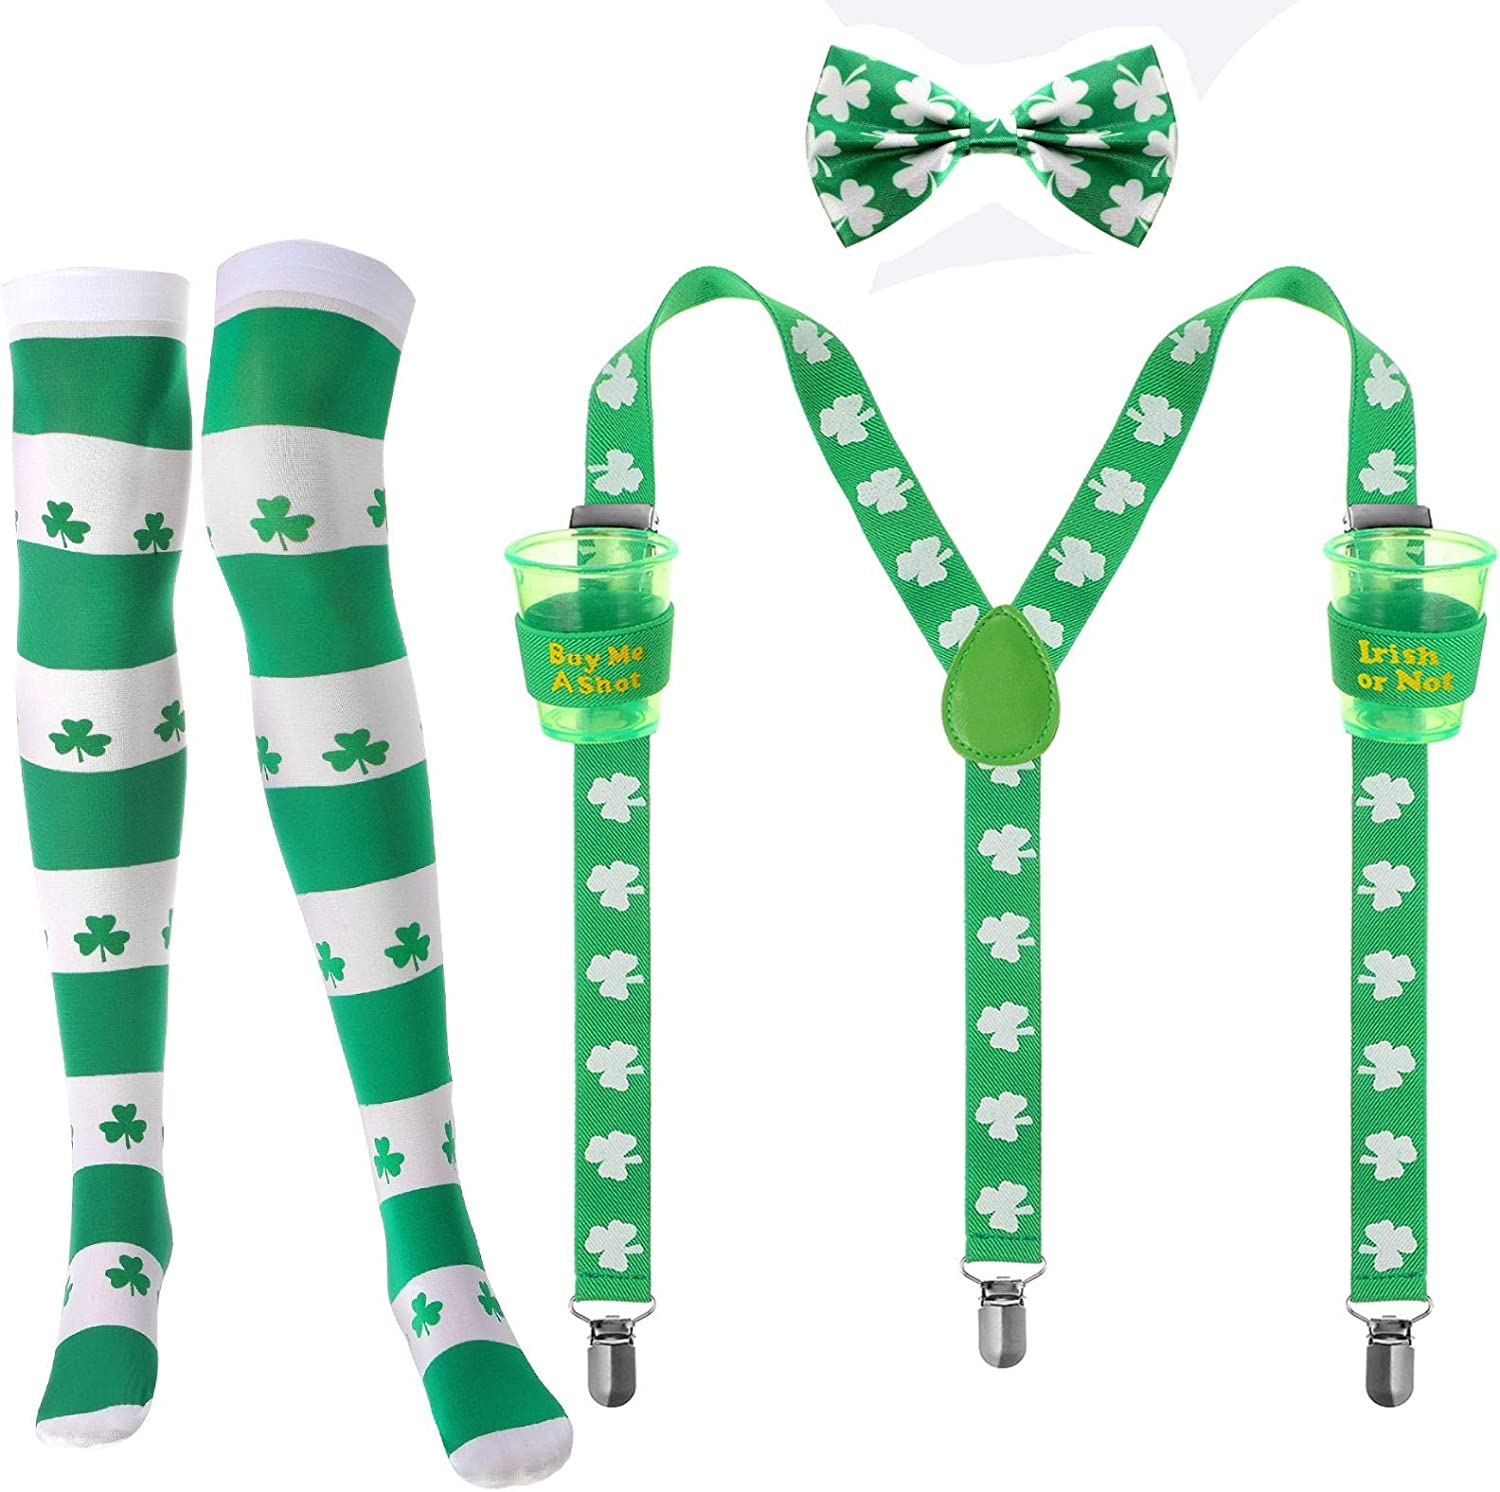 St. Patrick's Day Accessory Set, Include Shamrock Y Back Suspender with Cups, Shamrocks Bowtie and Knee Socks for St. Patrick's Day Party